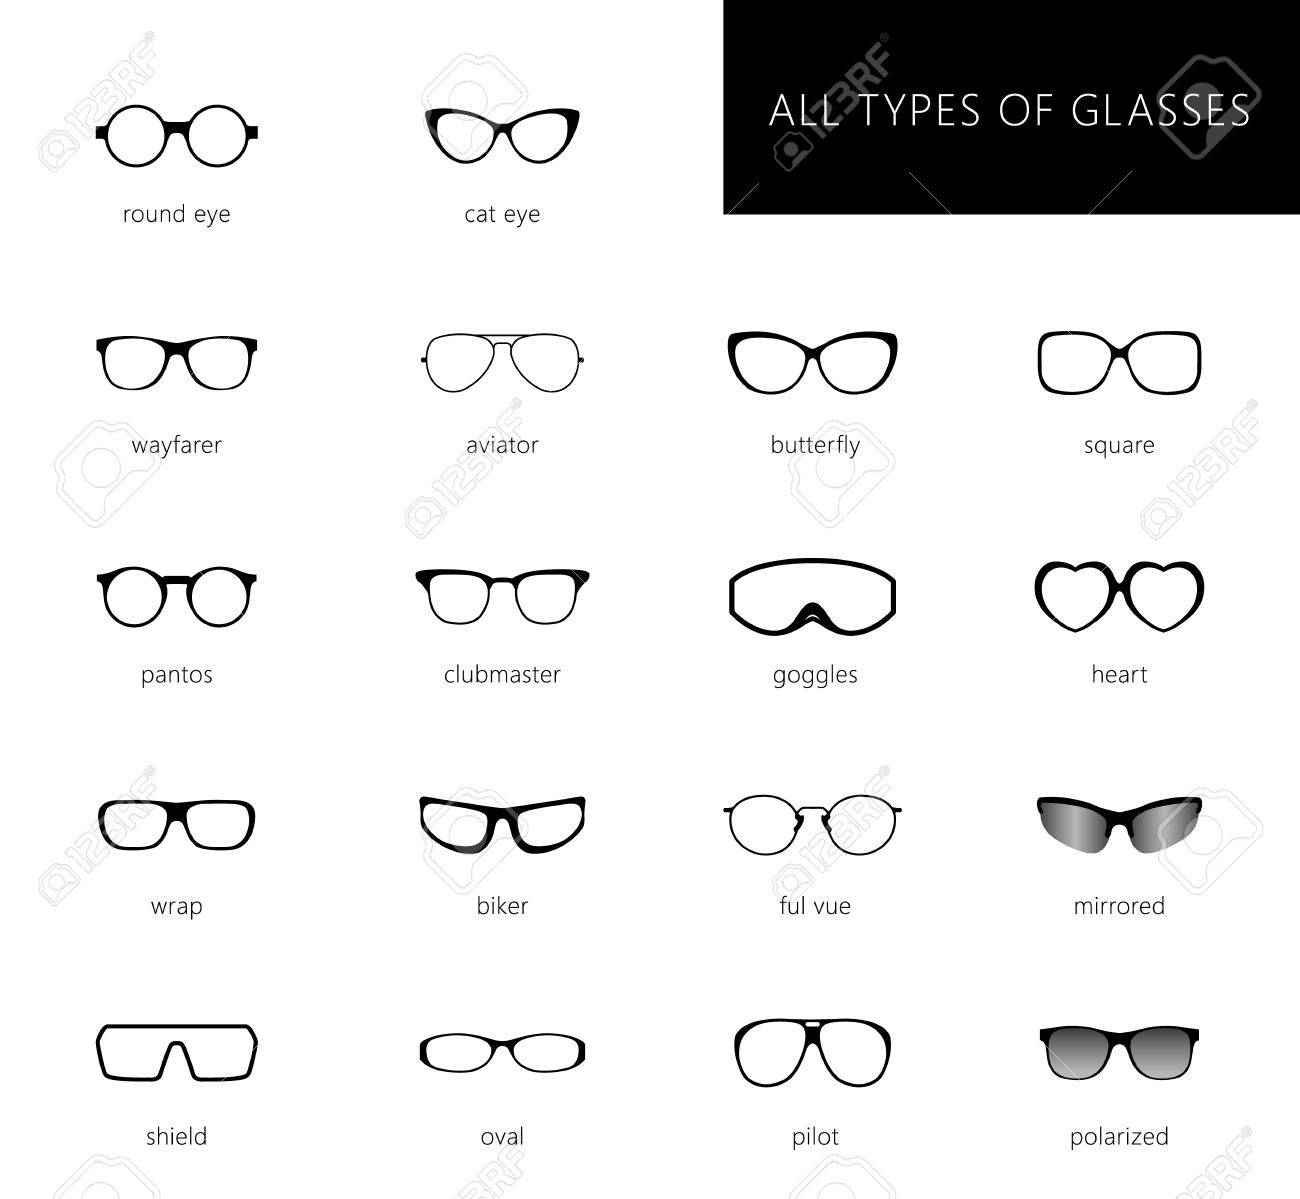 382f952c4e Flat vector glasses big set illustration. Collection of different of rim glasses  types - round